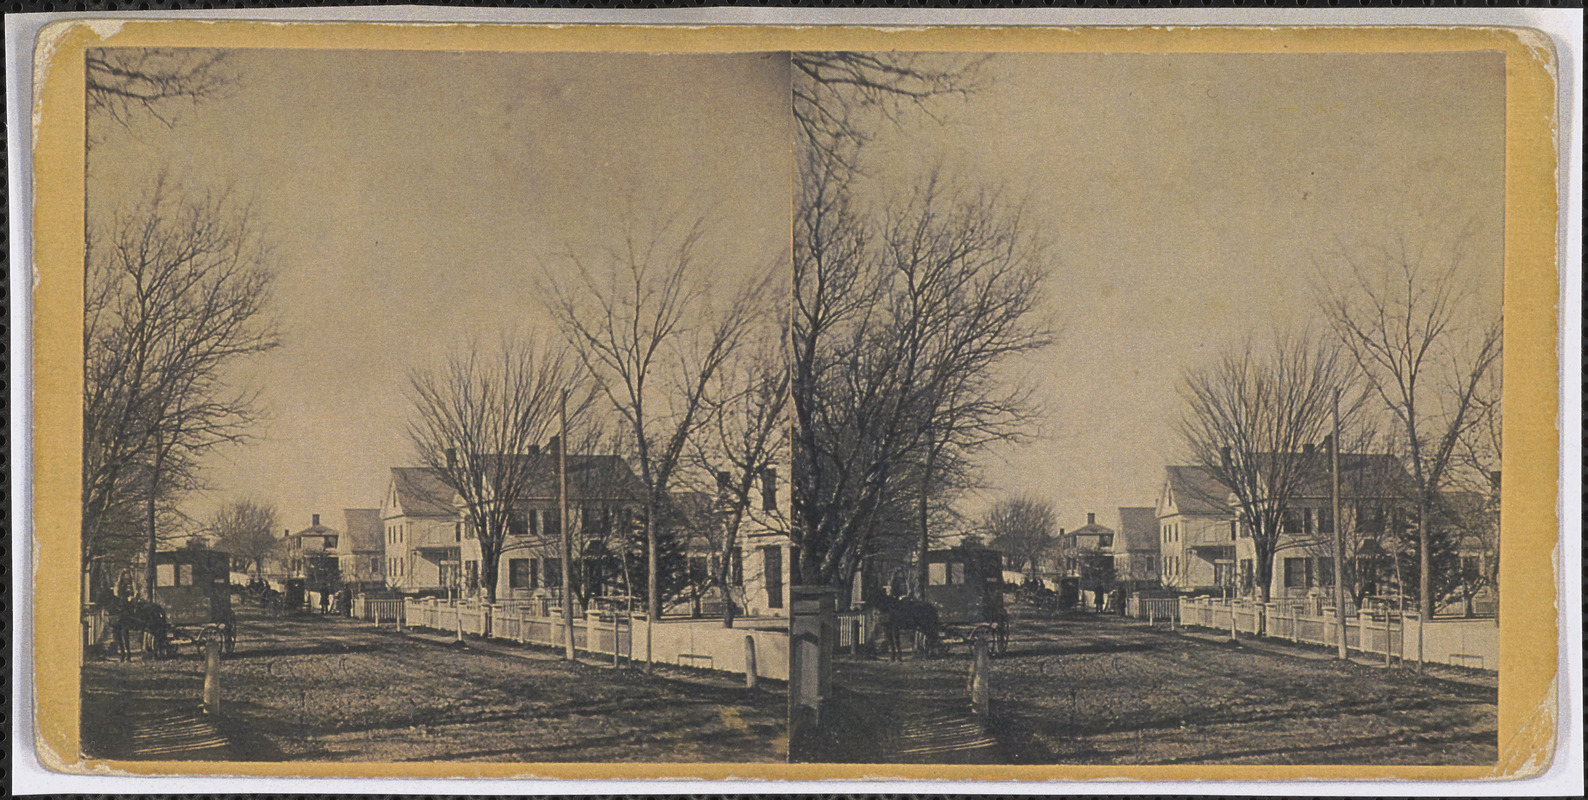 1 Center Street, Yarmouth Port, Mass. looking west